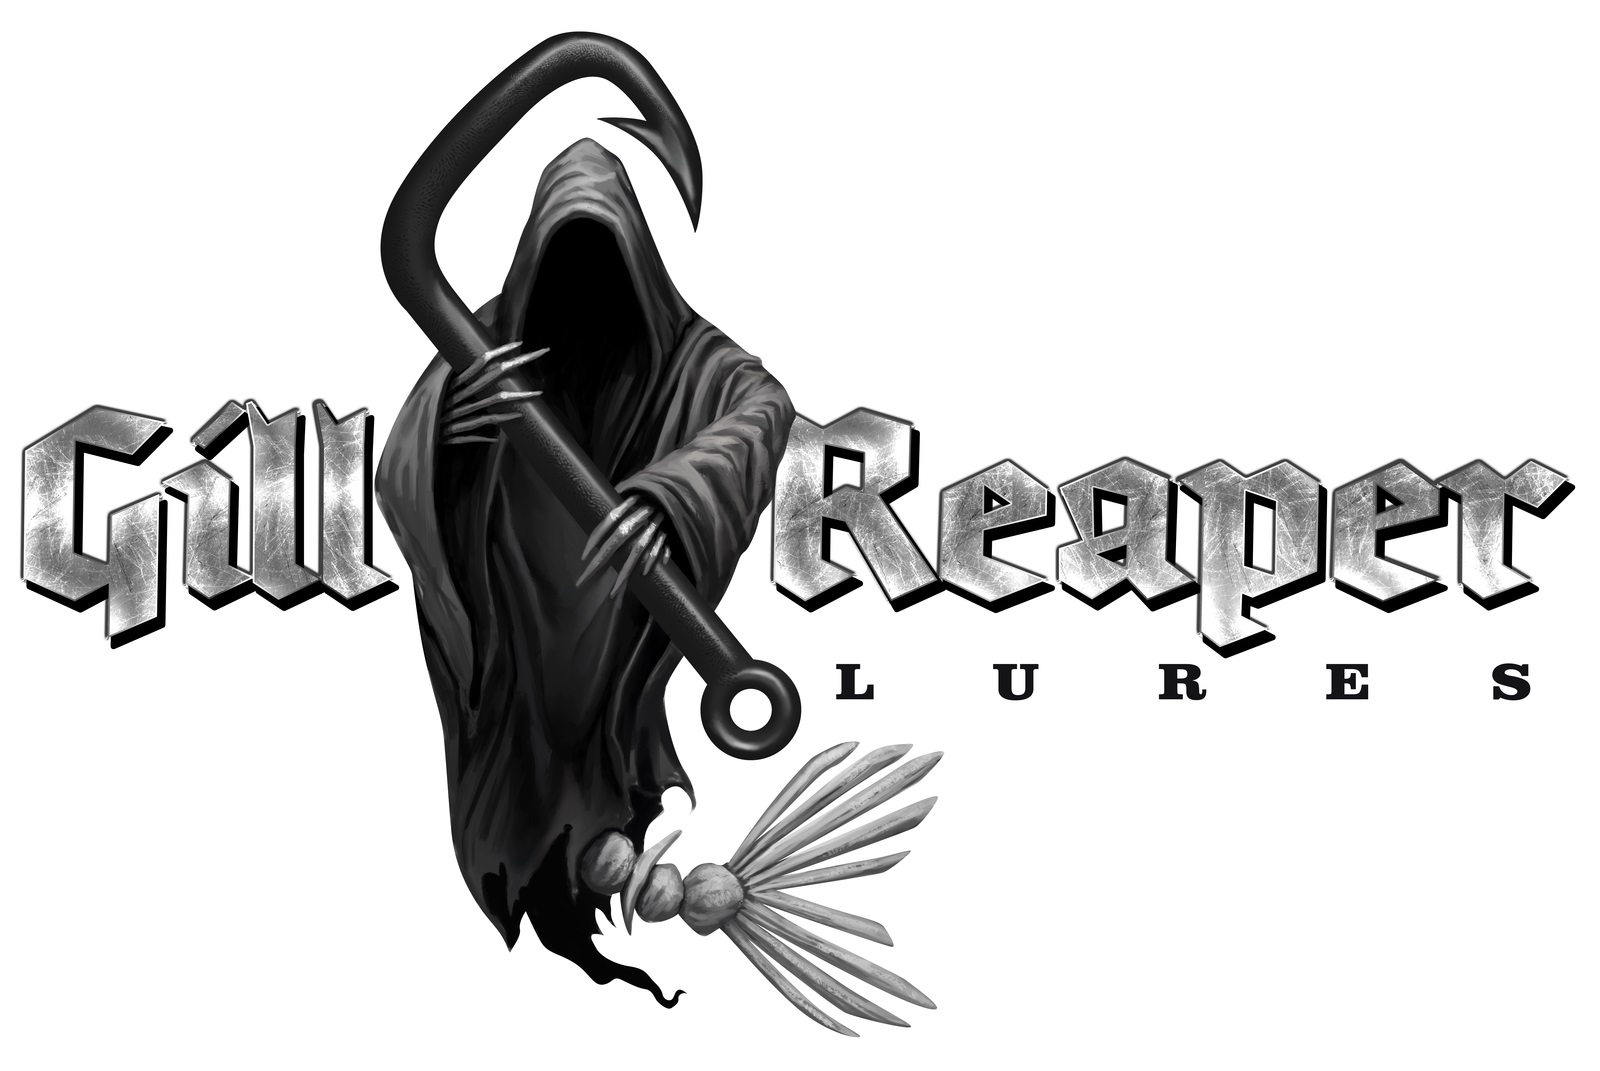 gill reaper lures